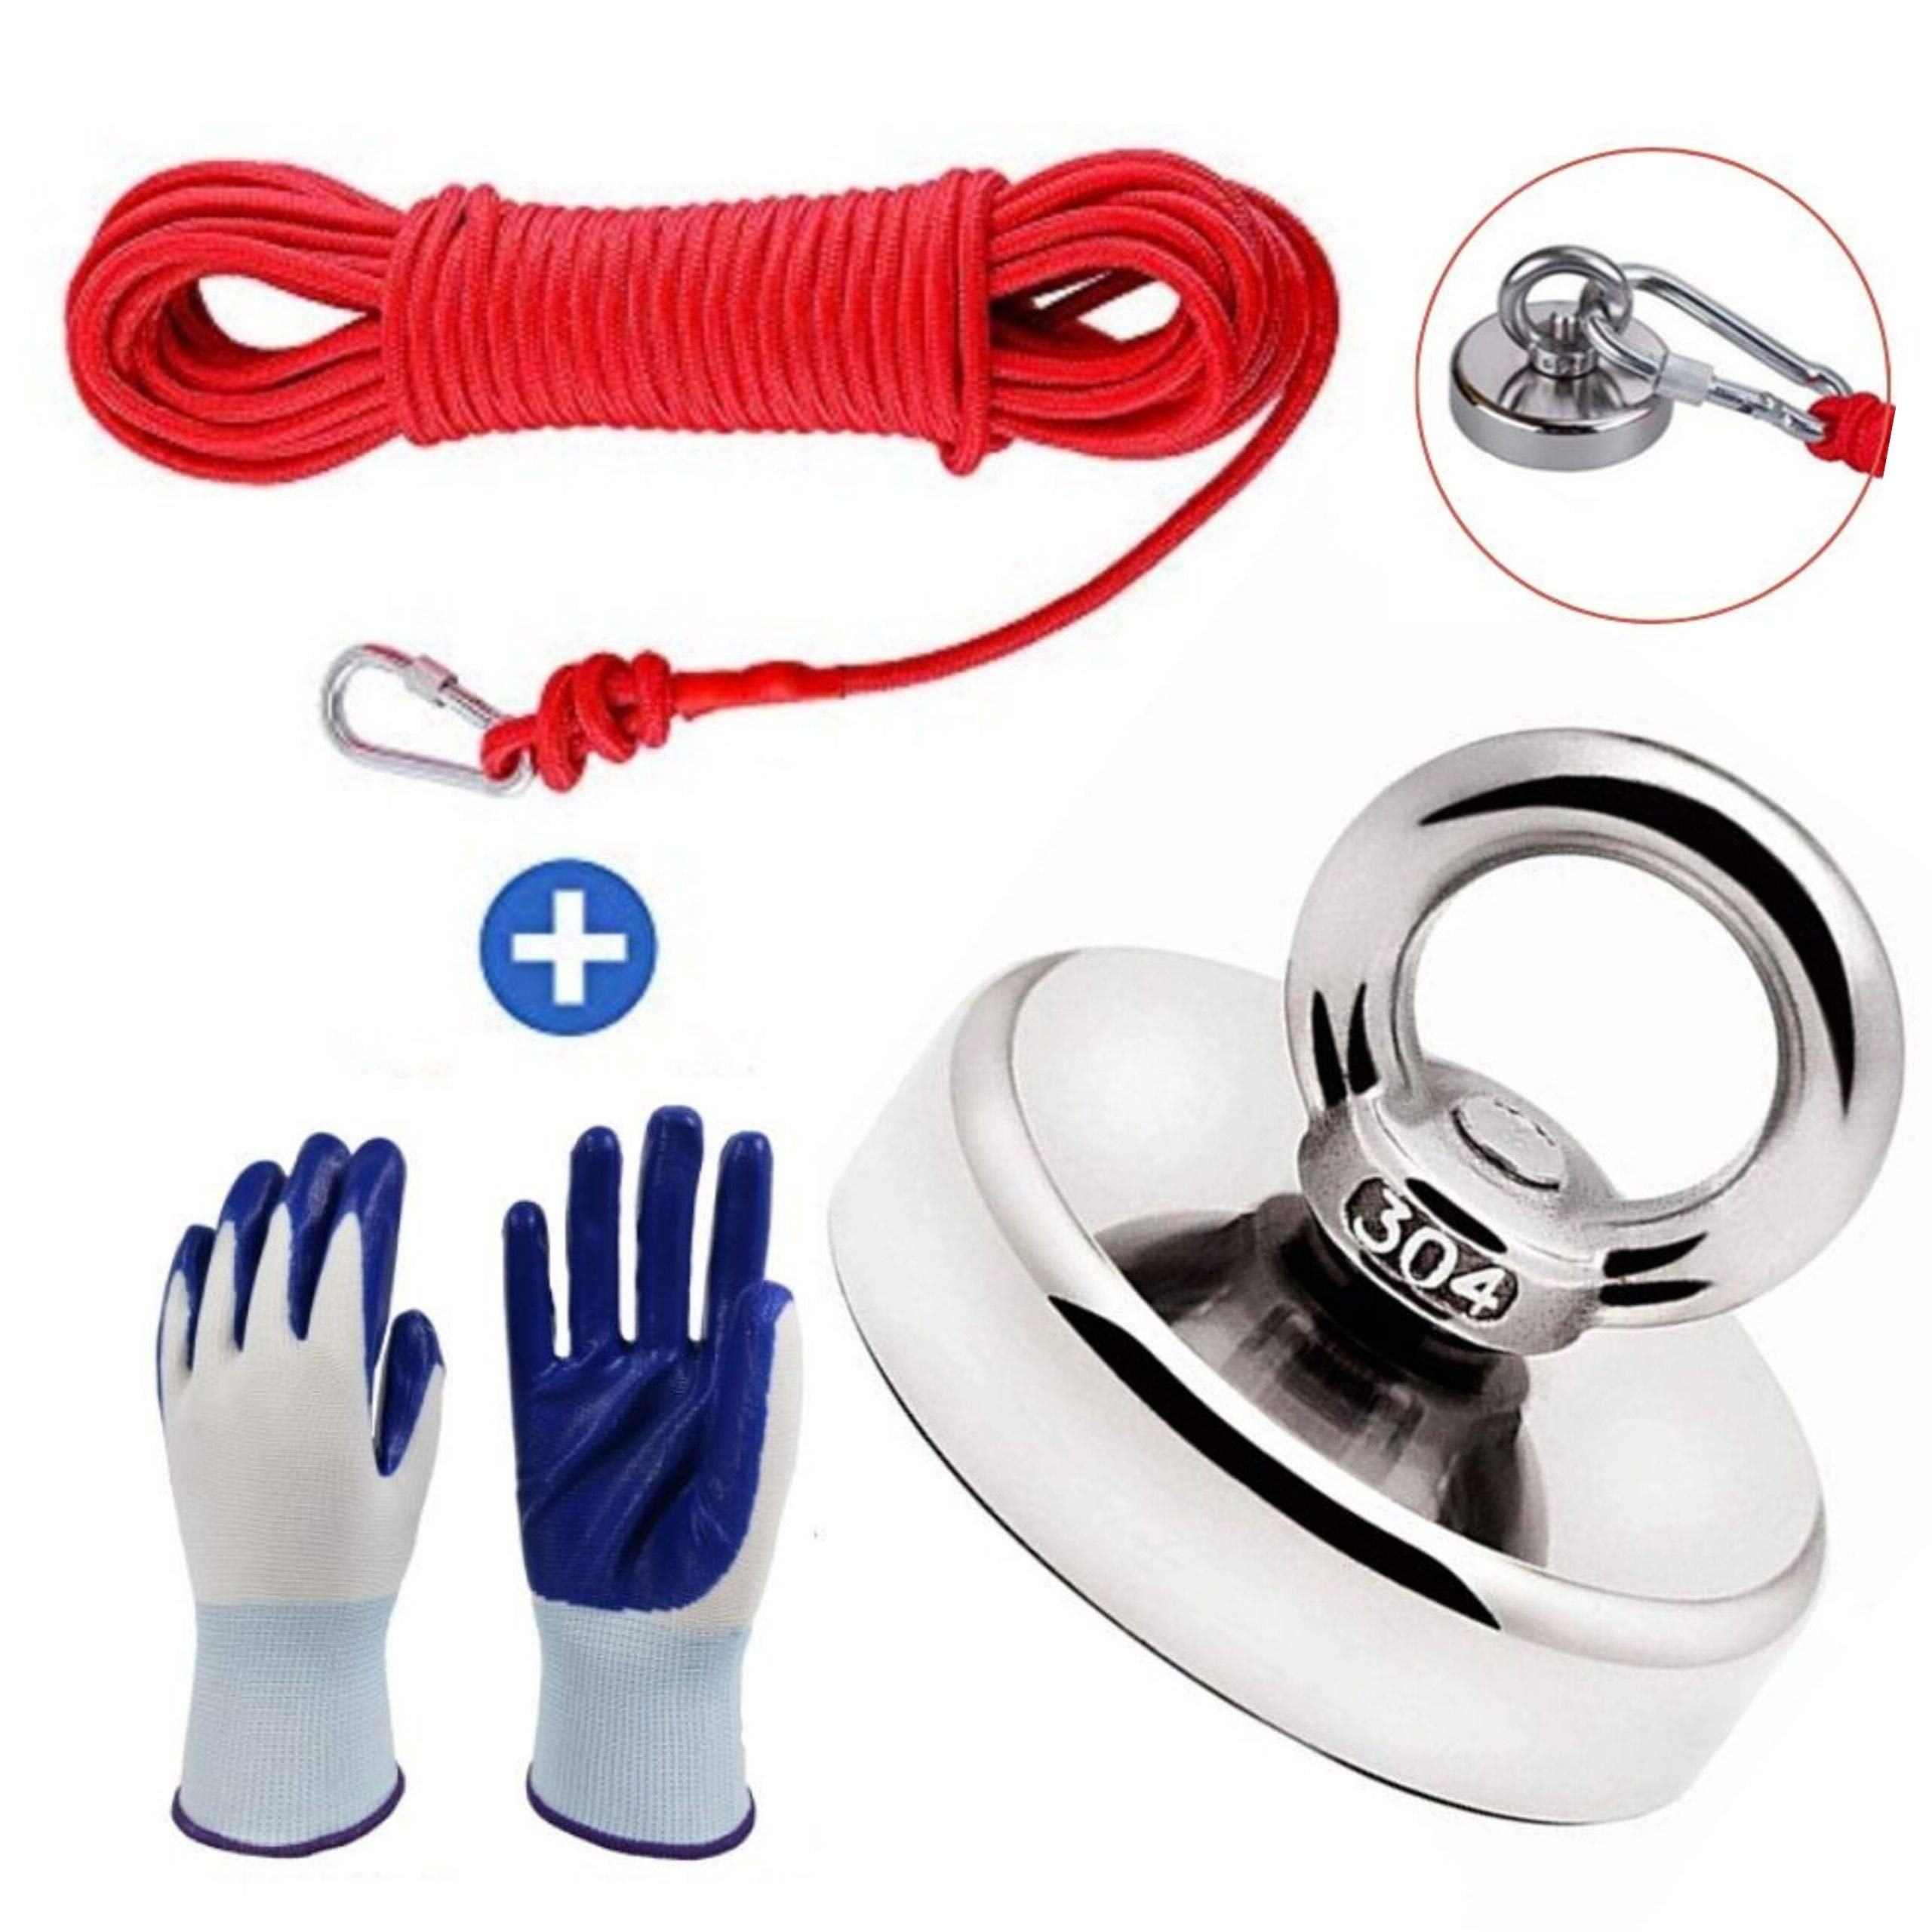 Magnet Fishing Kit with 66ft Rope & Glove, 380 LBS Pull Force Super Strong Neodymium Rare Earth Magnet with Heavy Duty Rope & Carabiner, Powerful Tool for Magnetic River Retrieving, 60mm Diameter by iREMARK